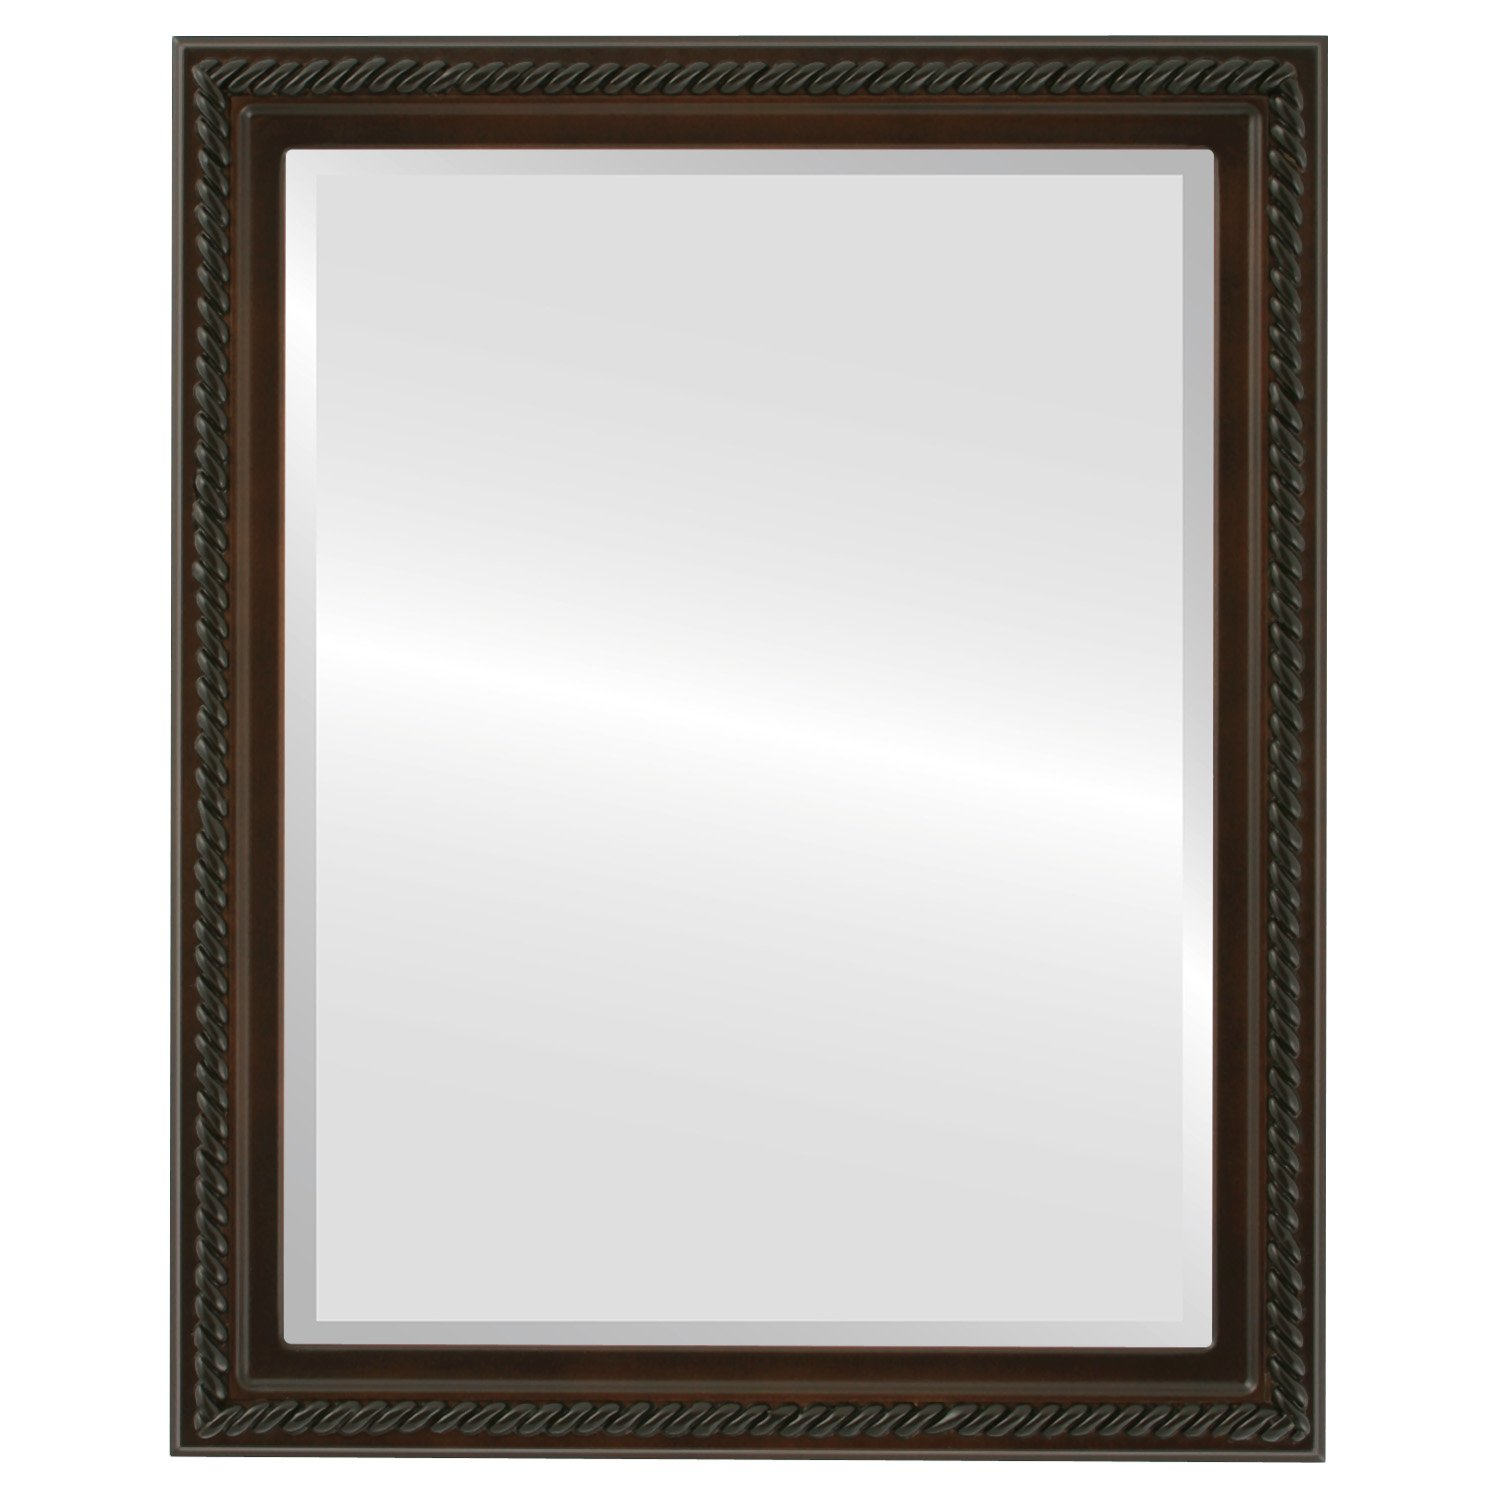 Rectangle Beveled Wall Mirror for Home Decor - Santa Fe Style - Walnut - 24x30 outside dimensions